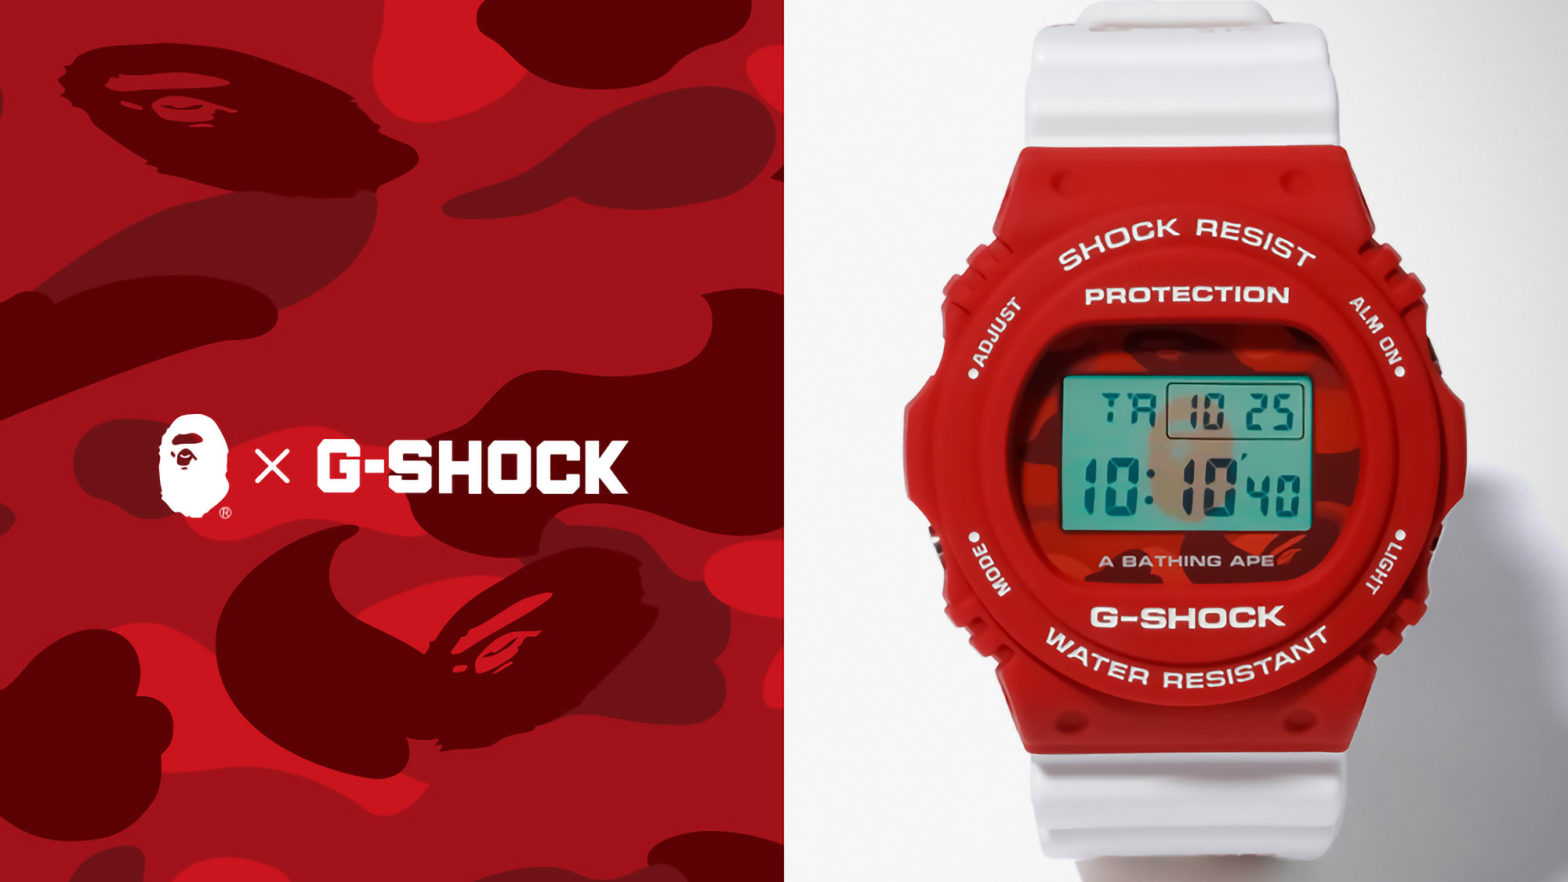 A Bathing Ape x G-Shock DW-5750 Watch